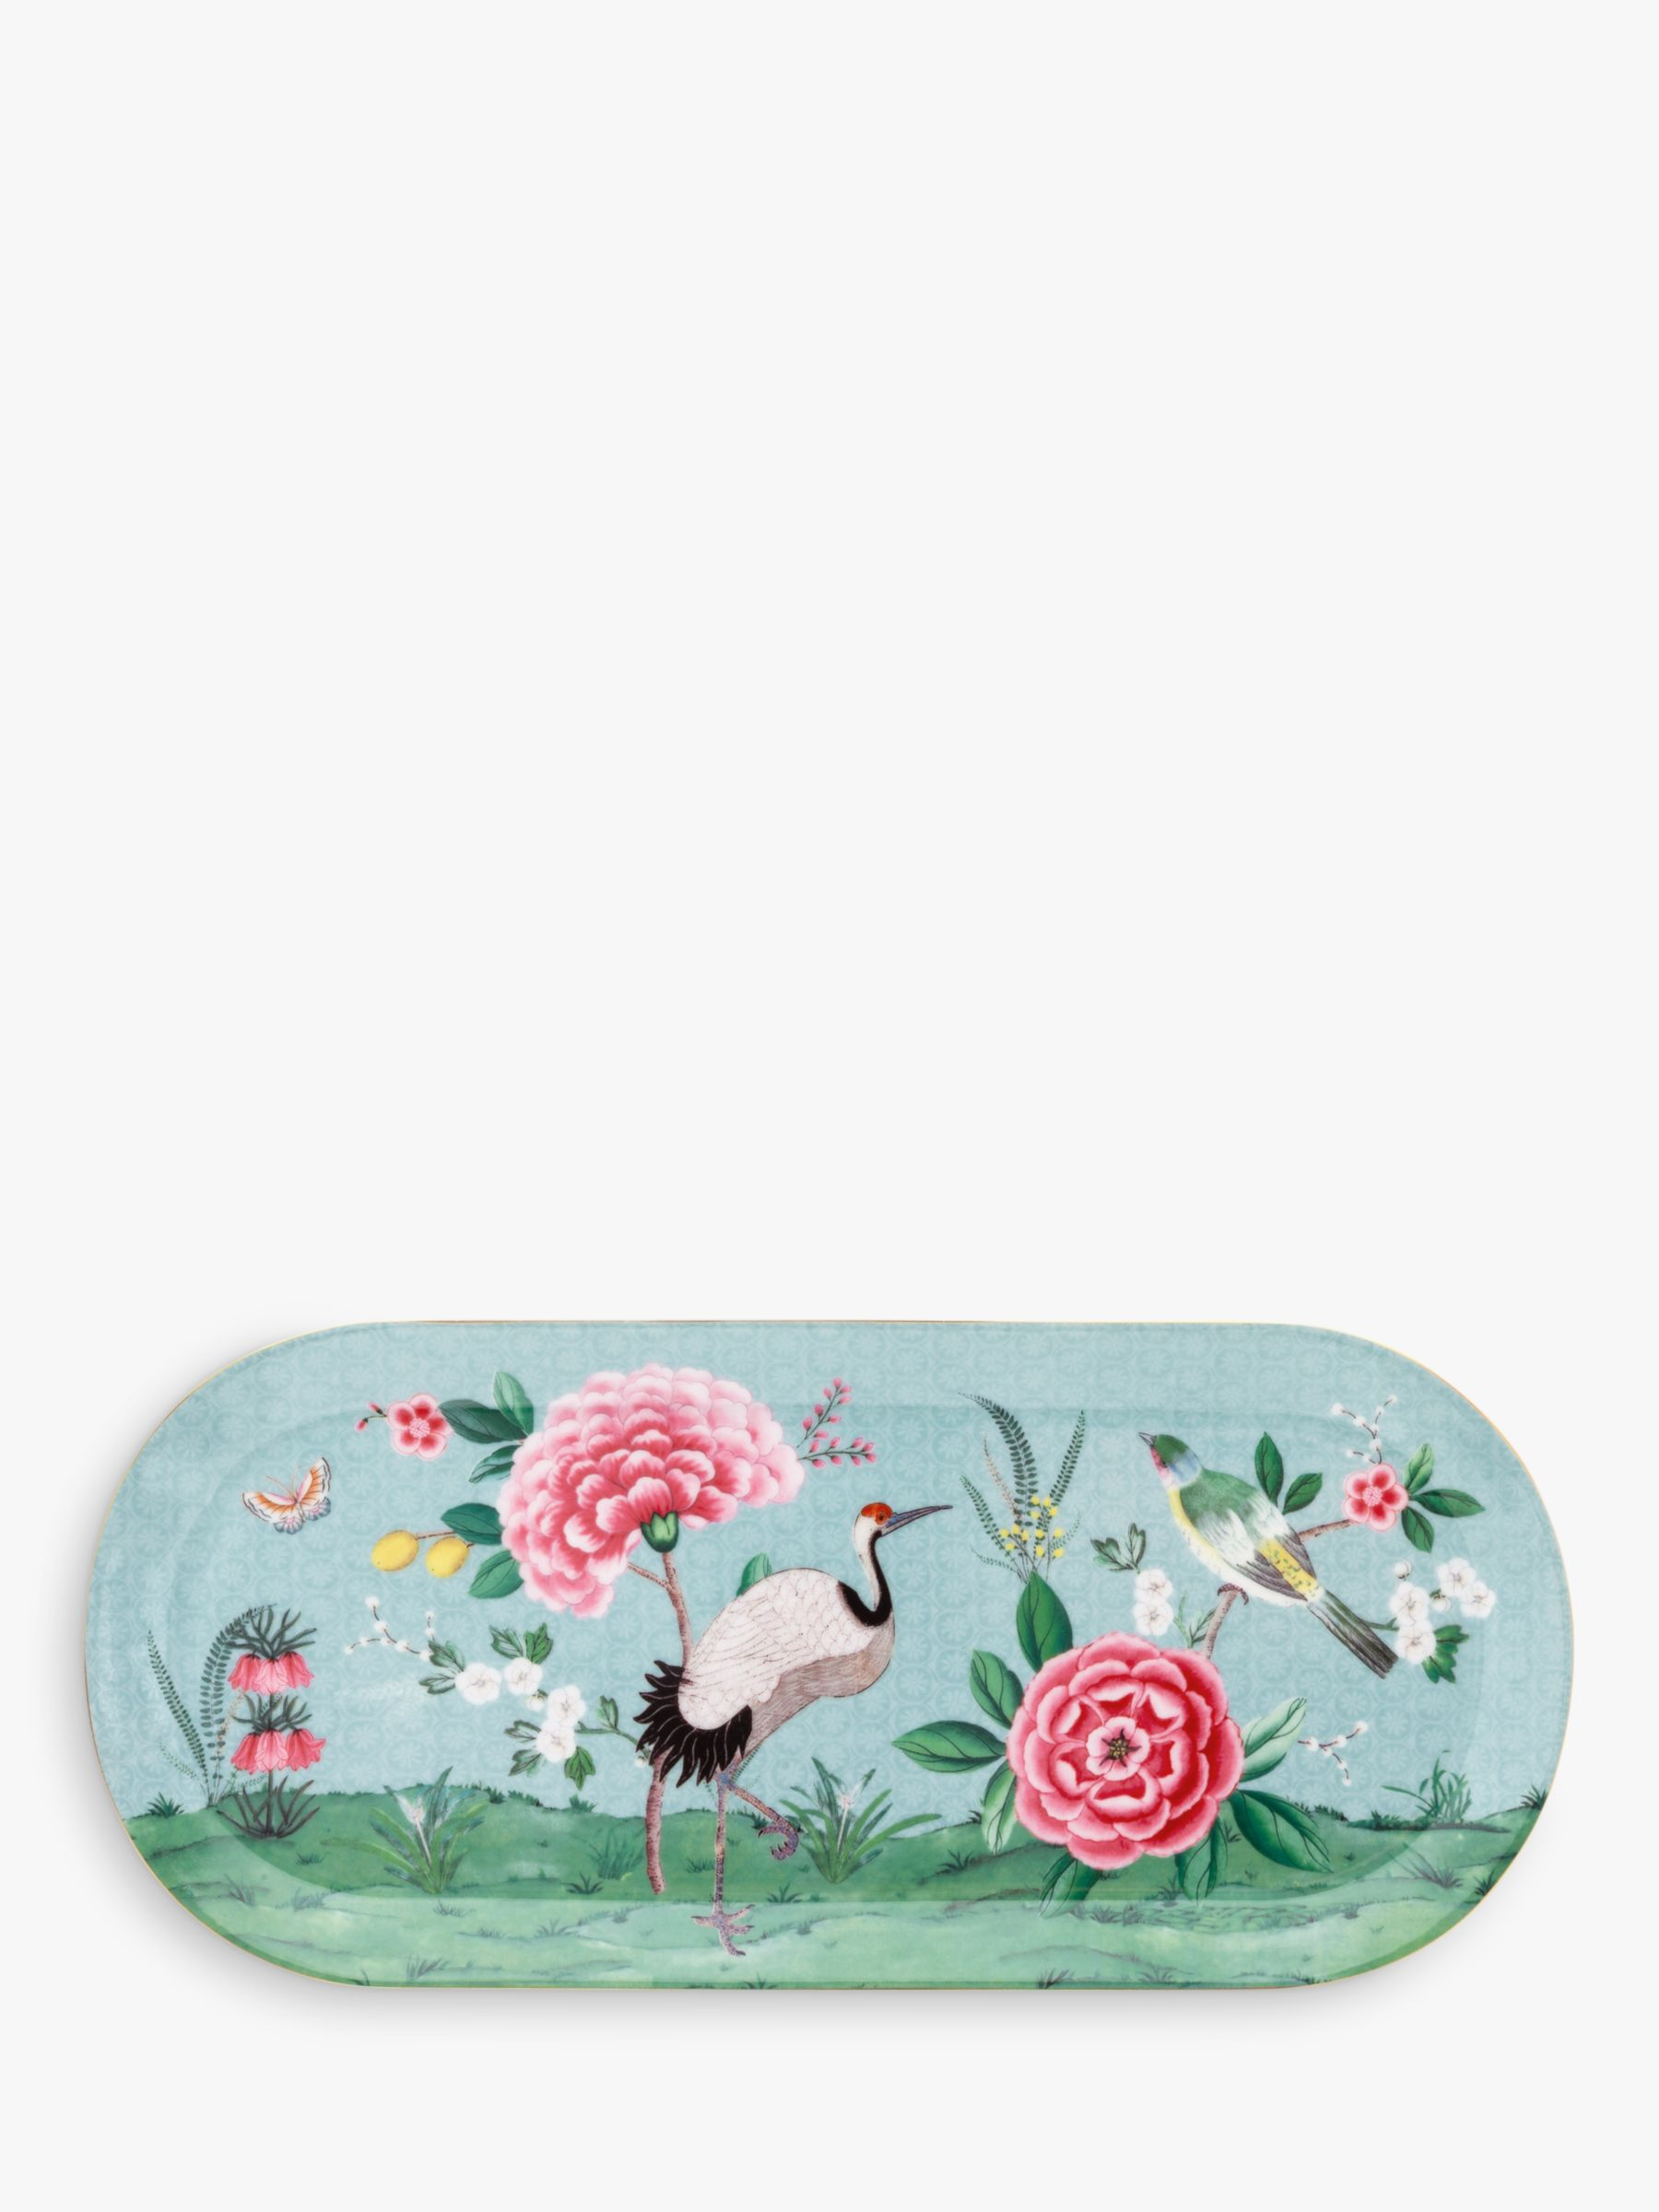 PiP Studio PiP Studio Blushing Birds Large Tray, Blue/Multi, L33cm